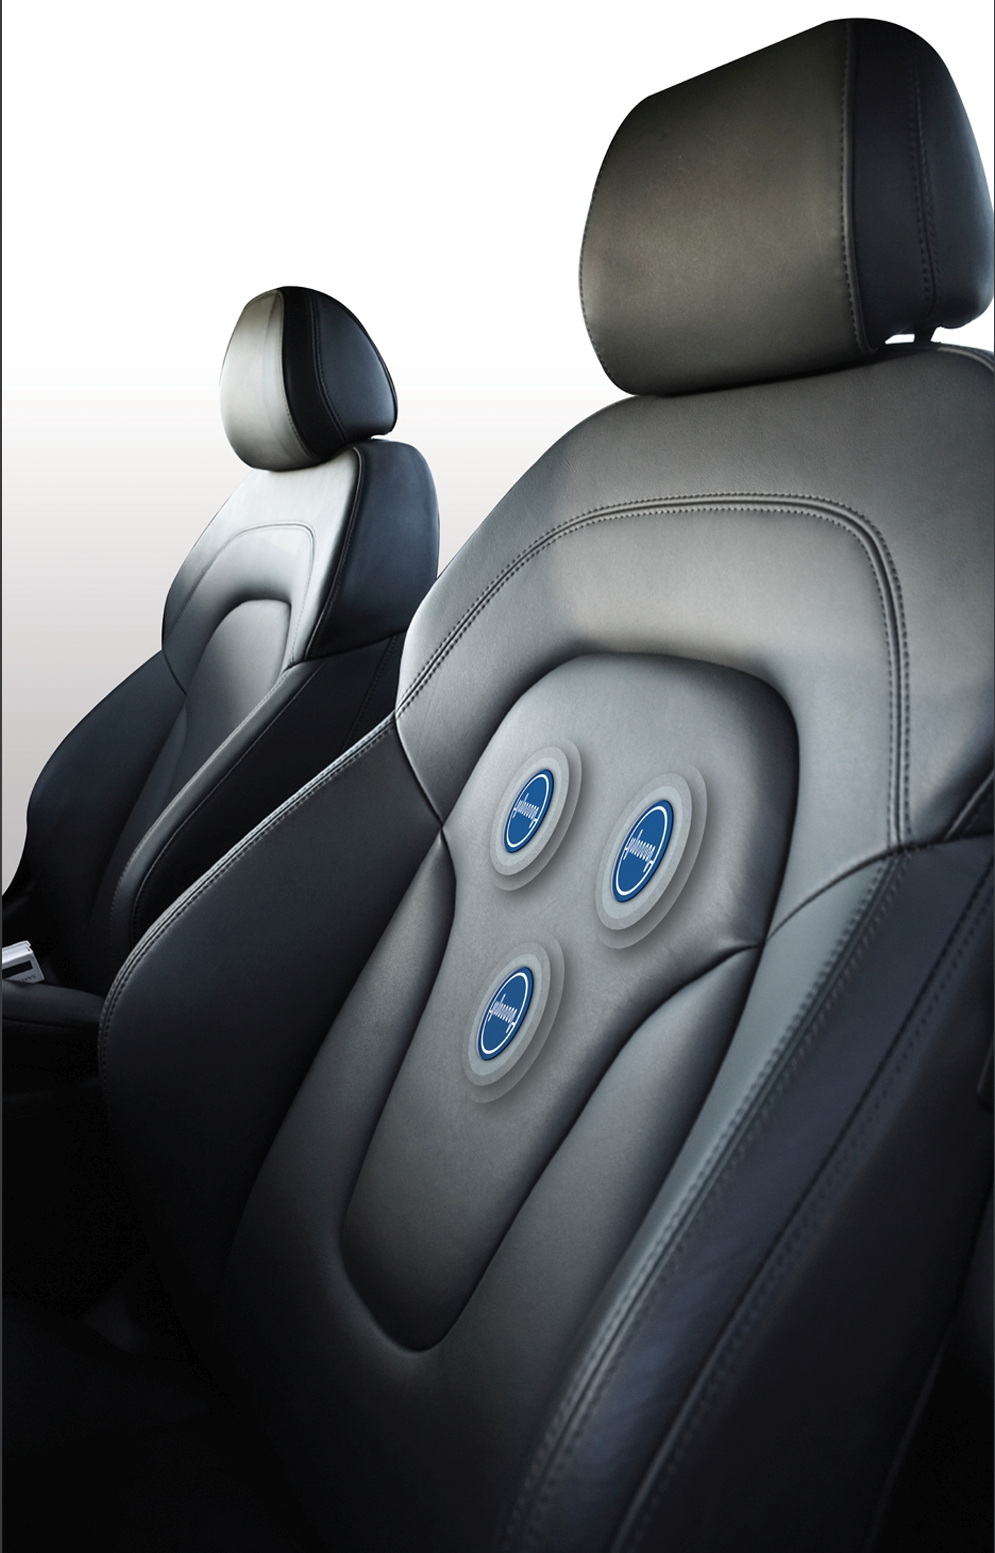 Car seats with integrally knitted sensors, which warn drivers when they start to fall asleep at the wheel, are being developed as part of a study by researchers at Nottingham Trent University.